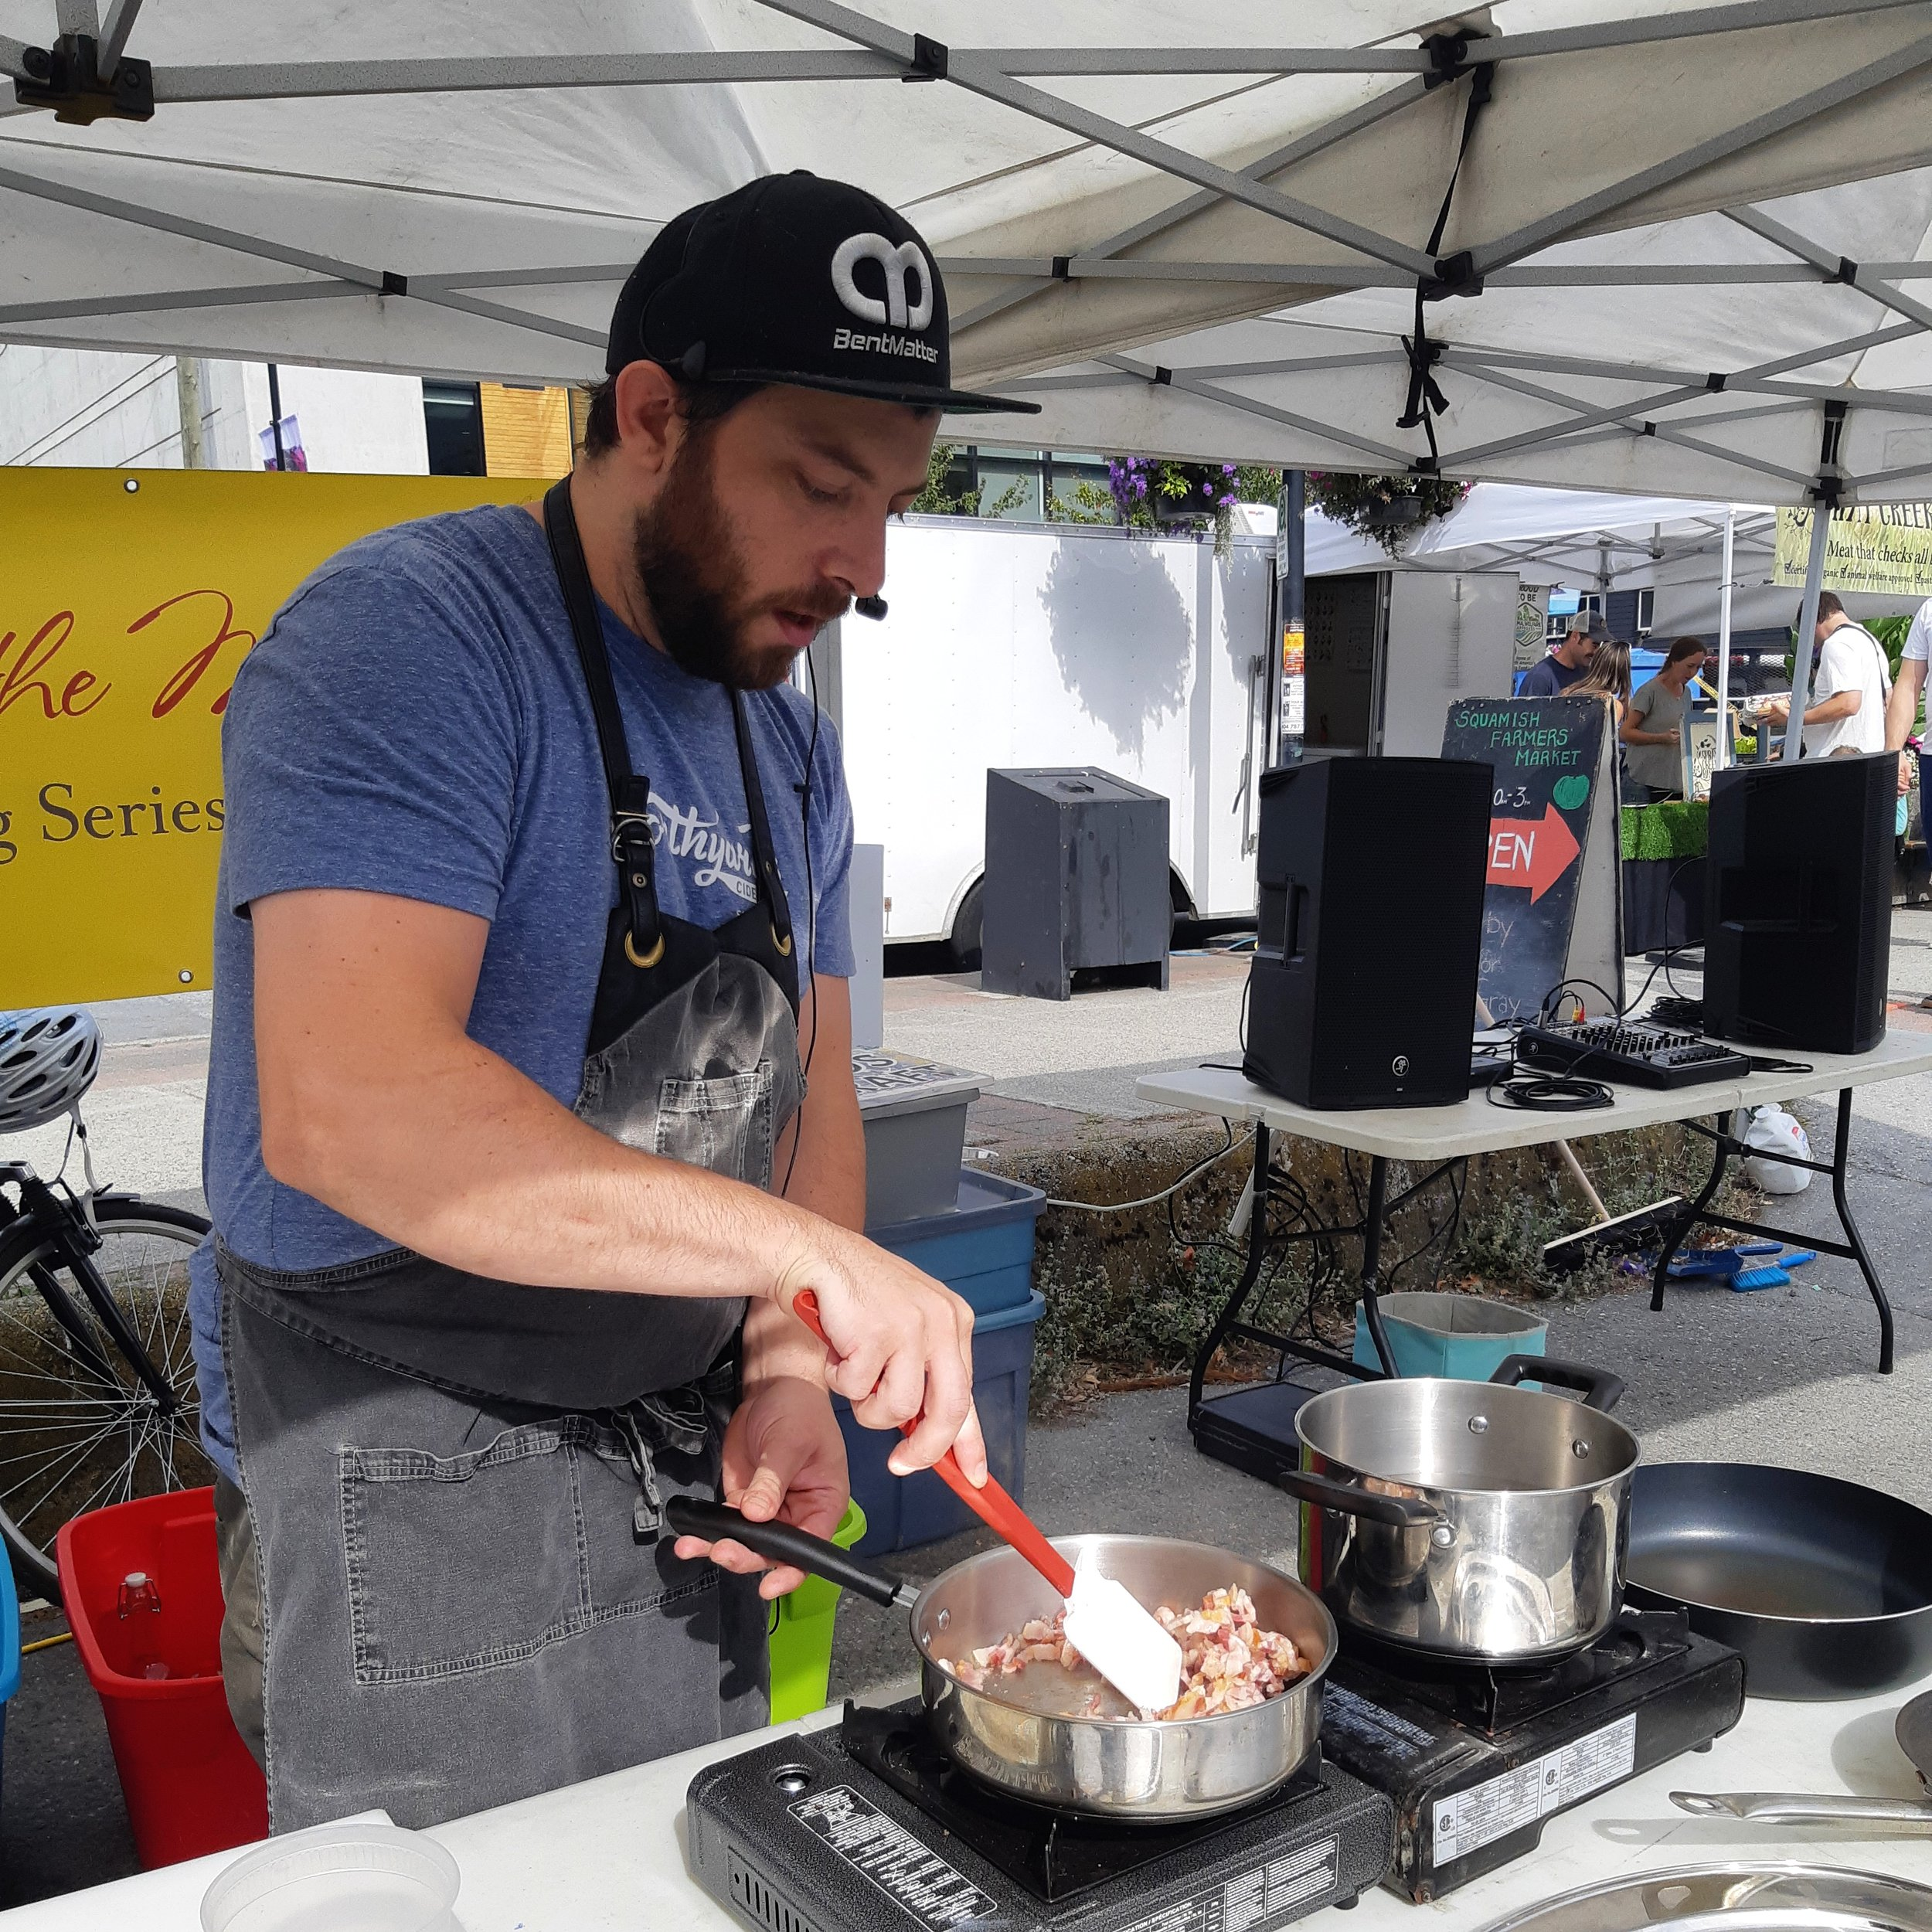 Tristan LeRoux is the chef at  Northyards Cider Co . and former soux chef at  Backcountry Brewing  so the man obviously has a palatte for great food and drink! He put his culinary skills on display on September 7th when he created the most incredible Chickpea Crepes and Ratatouille Omelettes using a great array of market ingredients. His recipe creations can be found on our recipe share here.